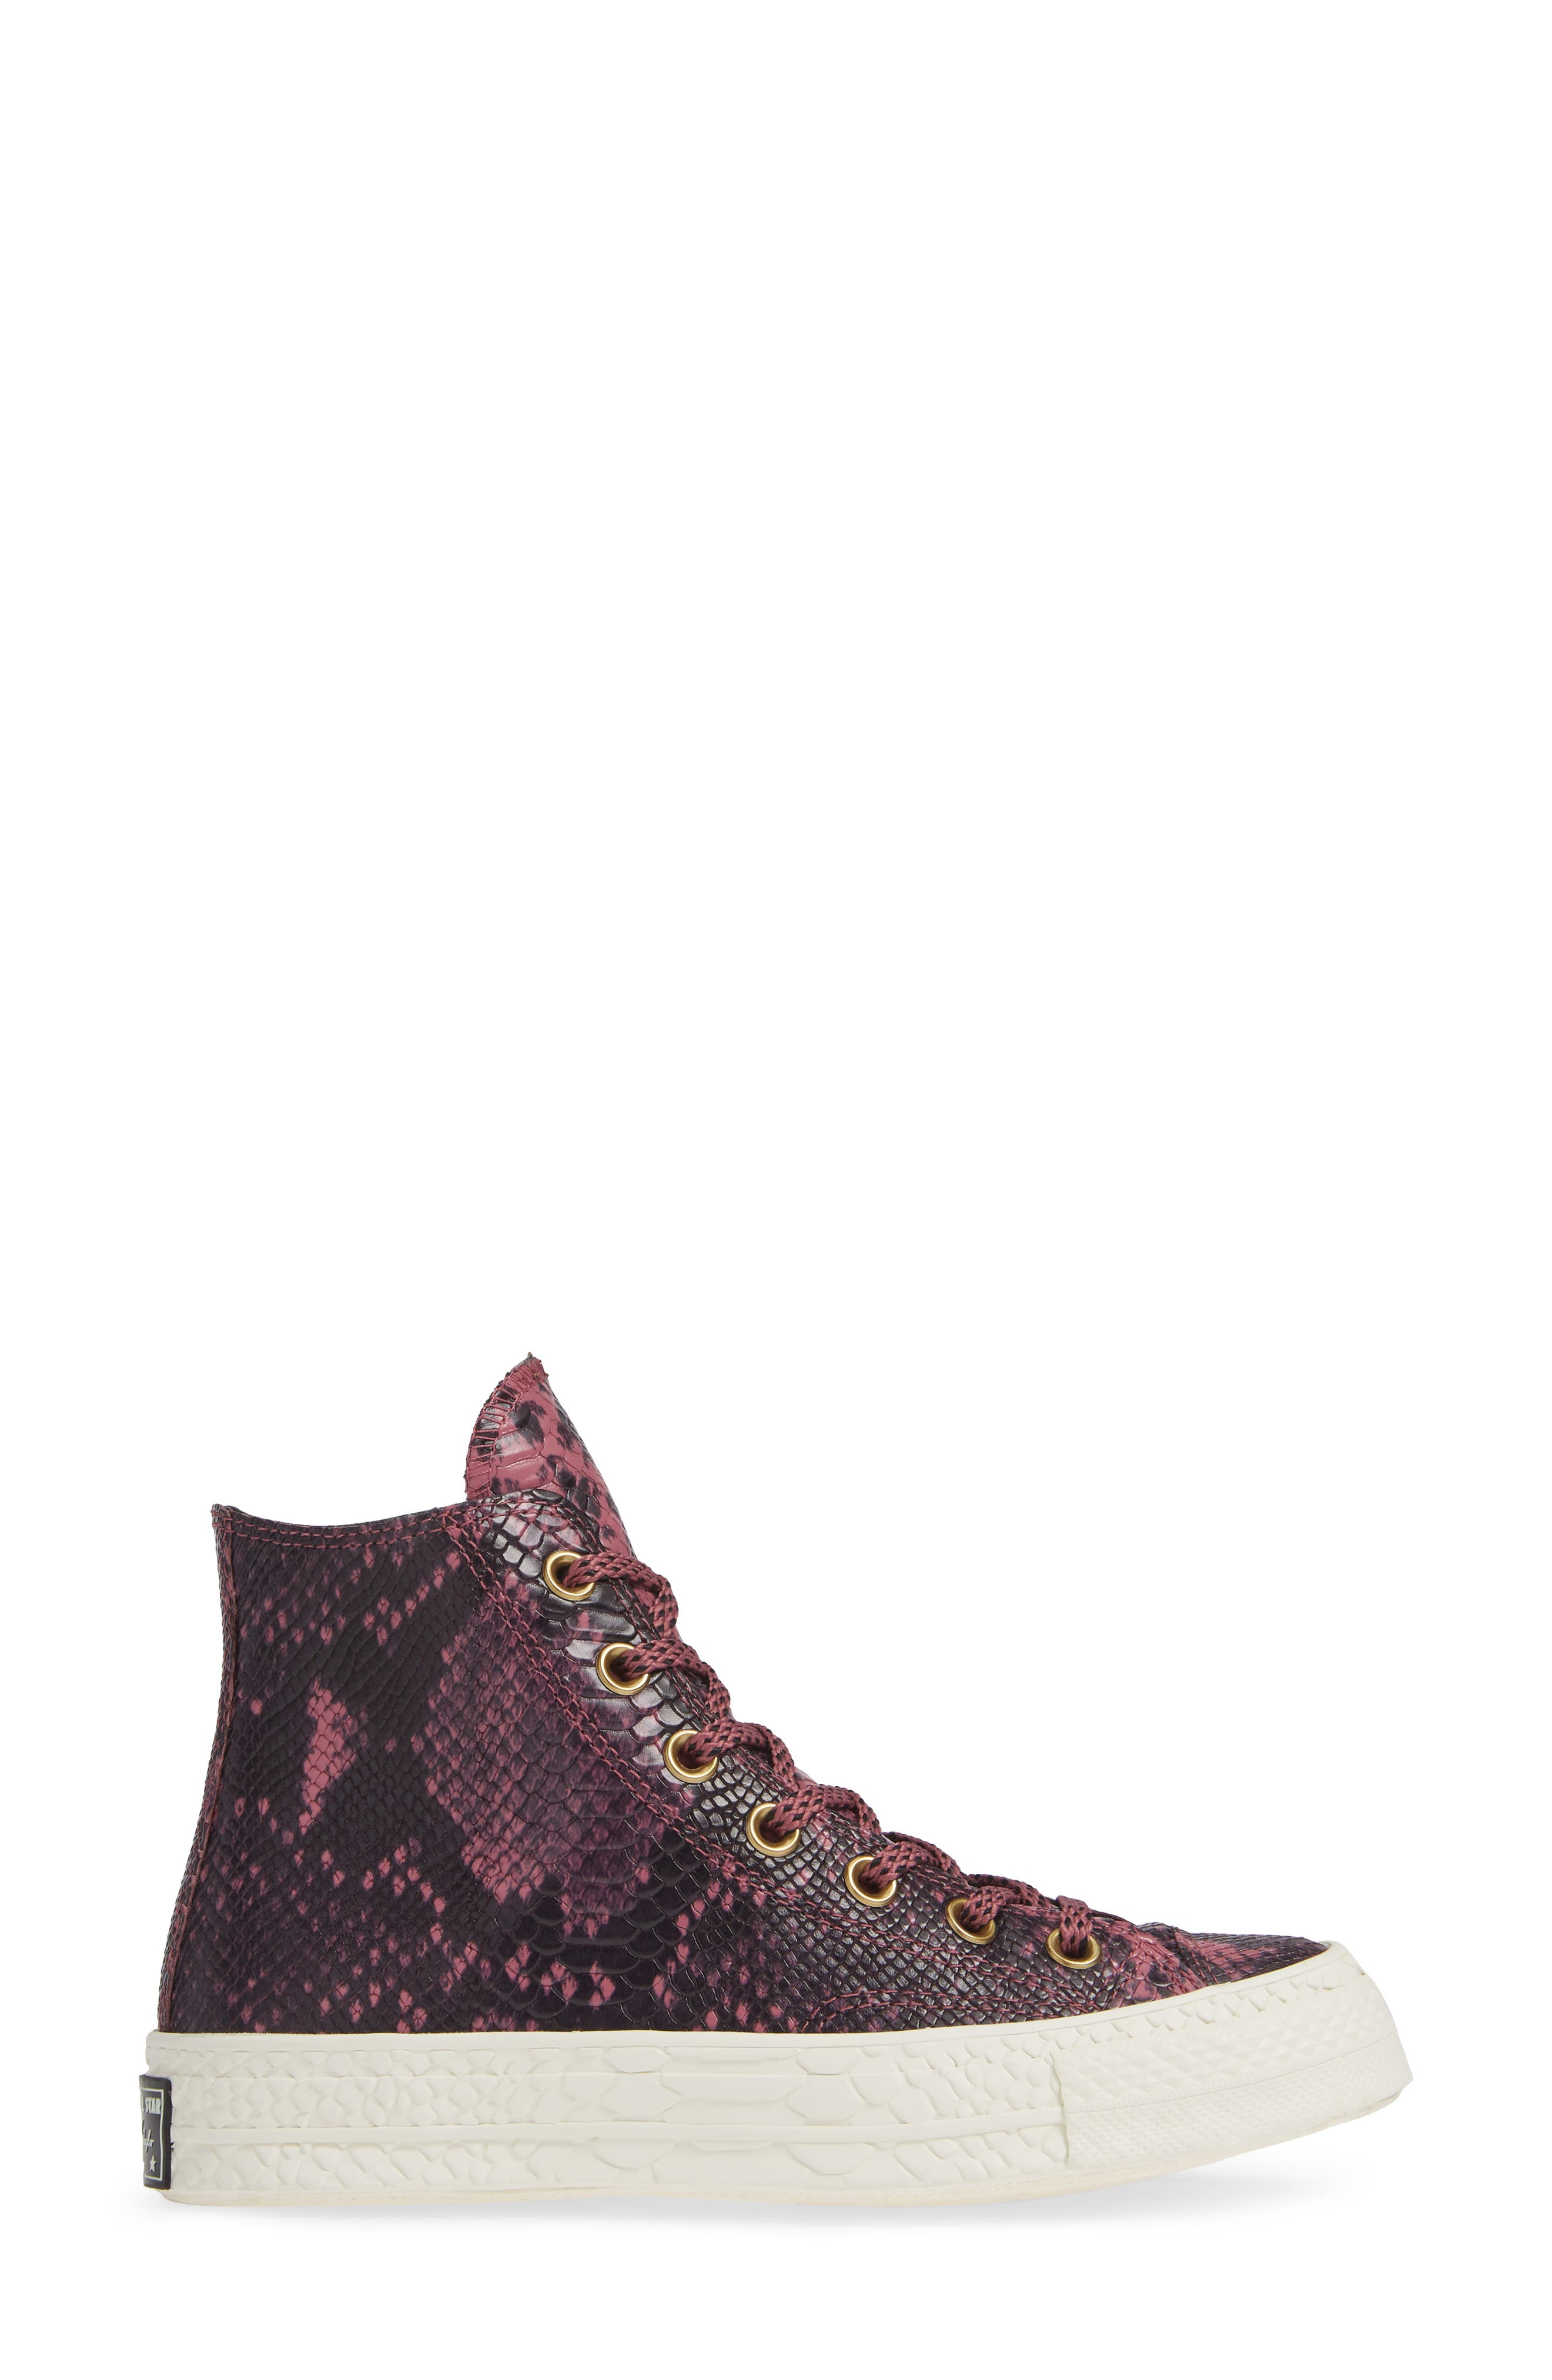 Chuck Taylor<sup>®</sup> All Star<sup>®</sup> CT 70 Reptile High Top Sneaker,                             Alternate thumbnail 3, color,                             VINTAGE WINE LEATHER